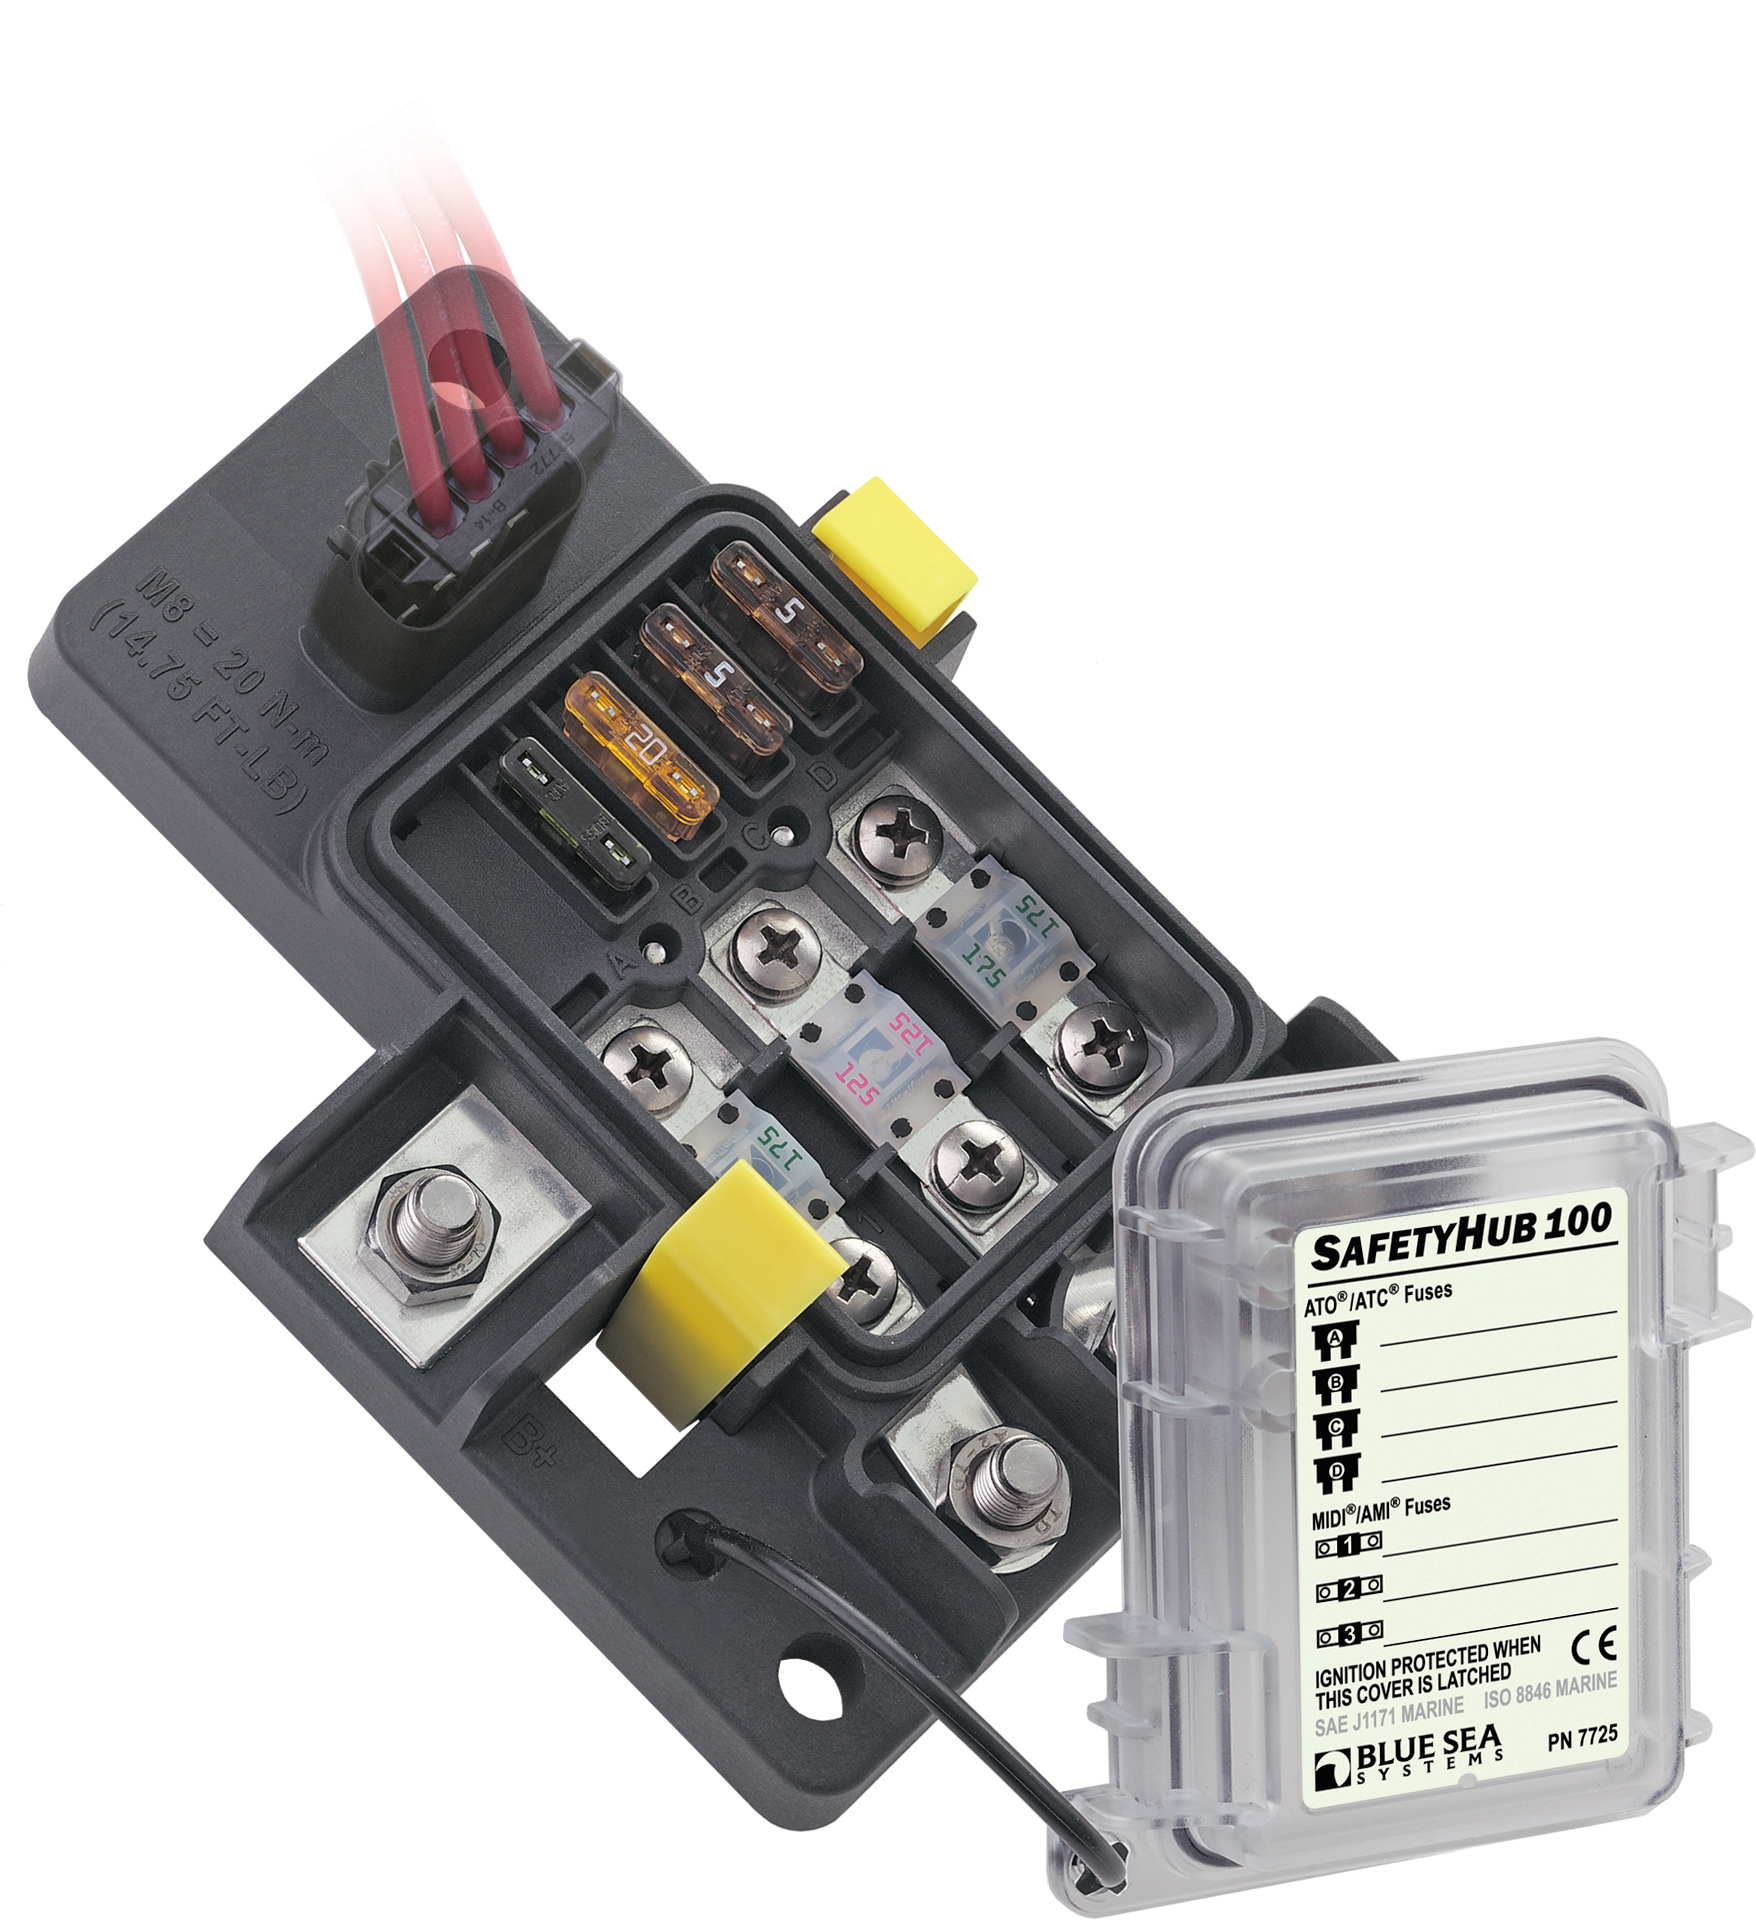 safetyhub 100 fuse block blue sea systems RV Fuse Box product image